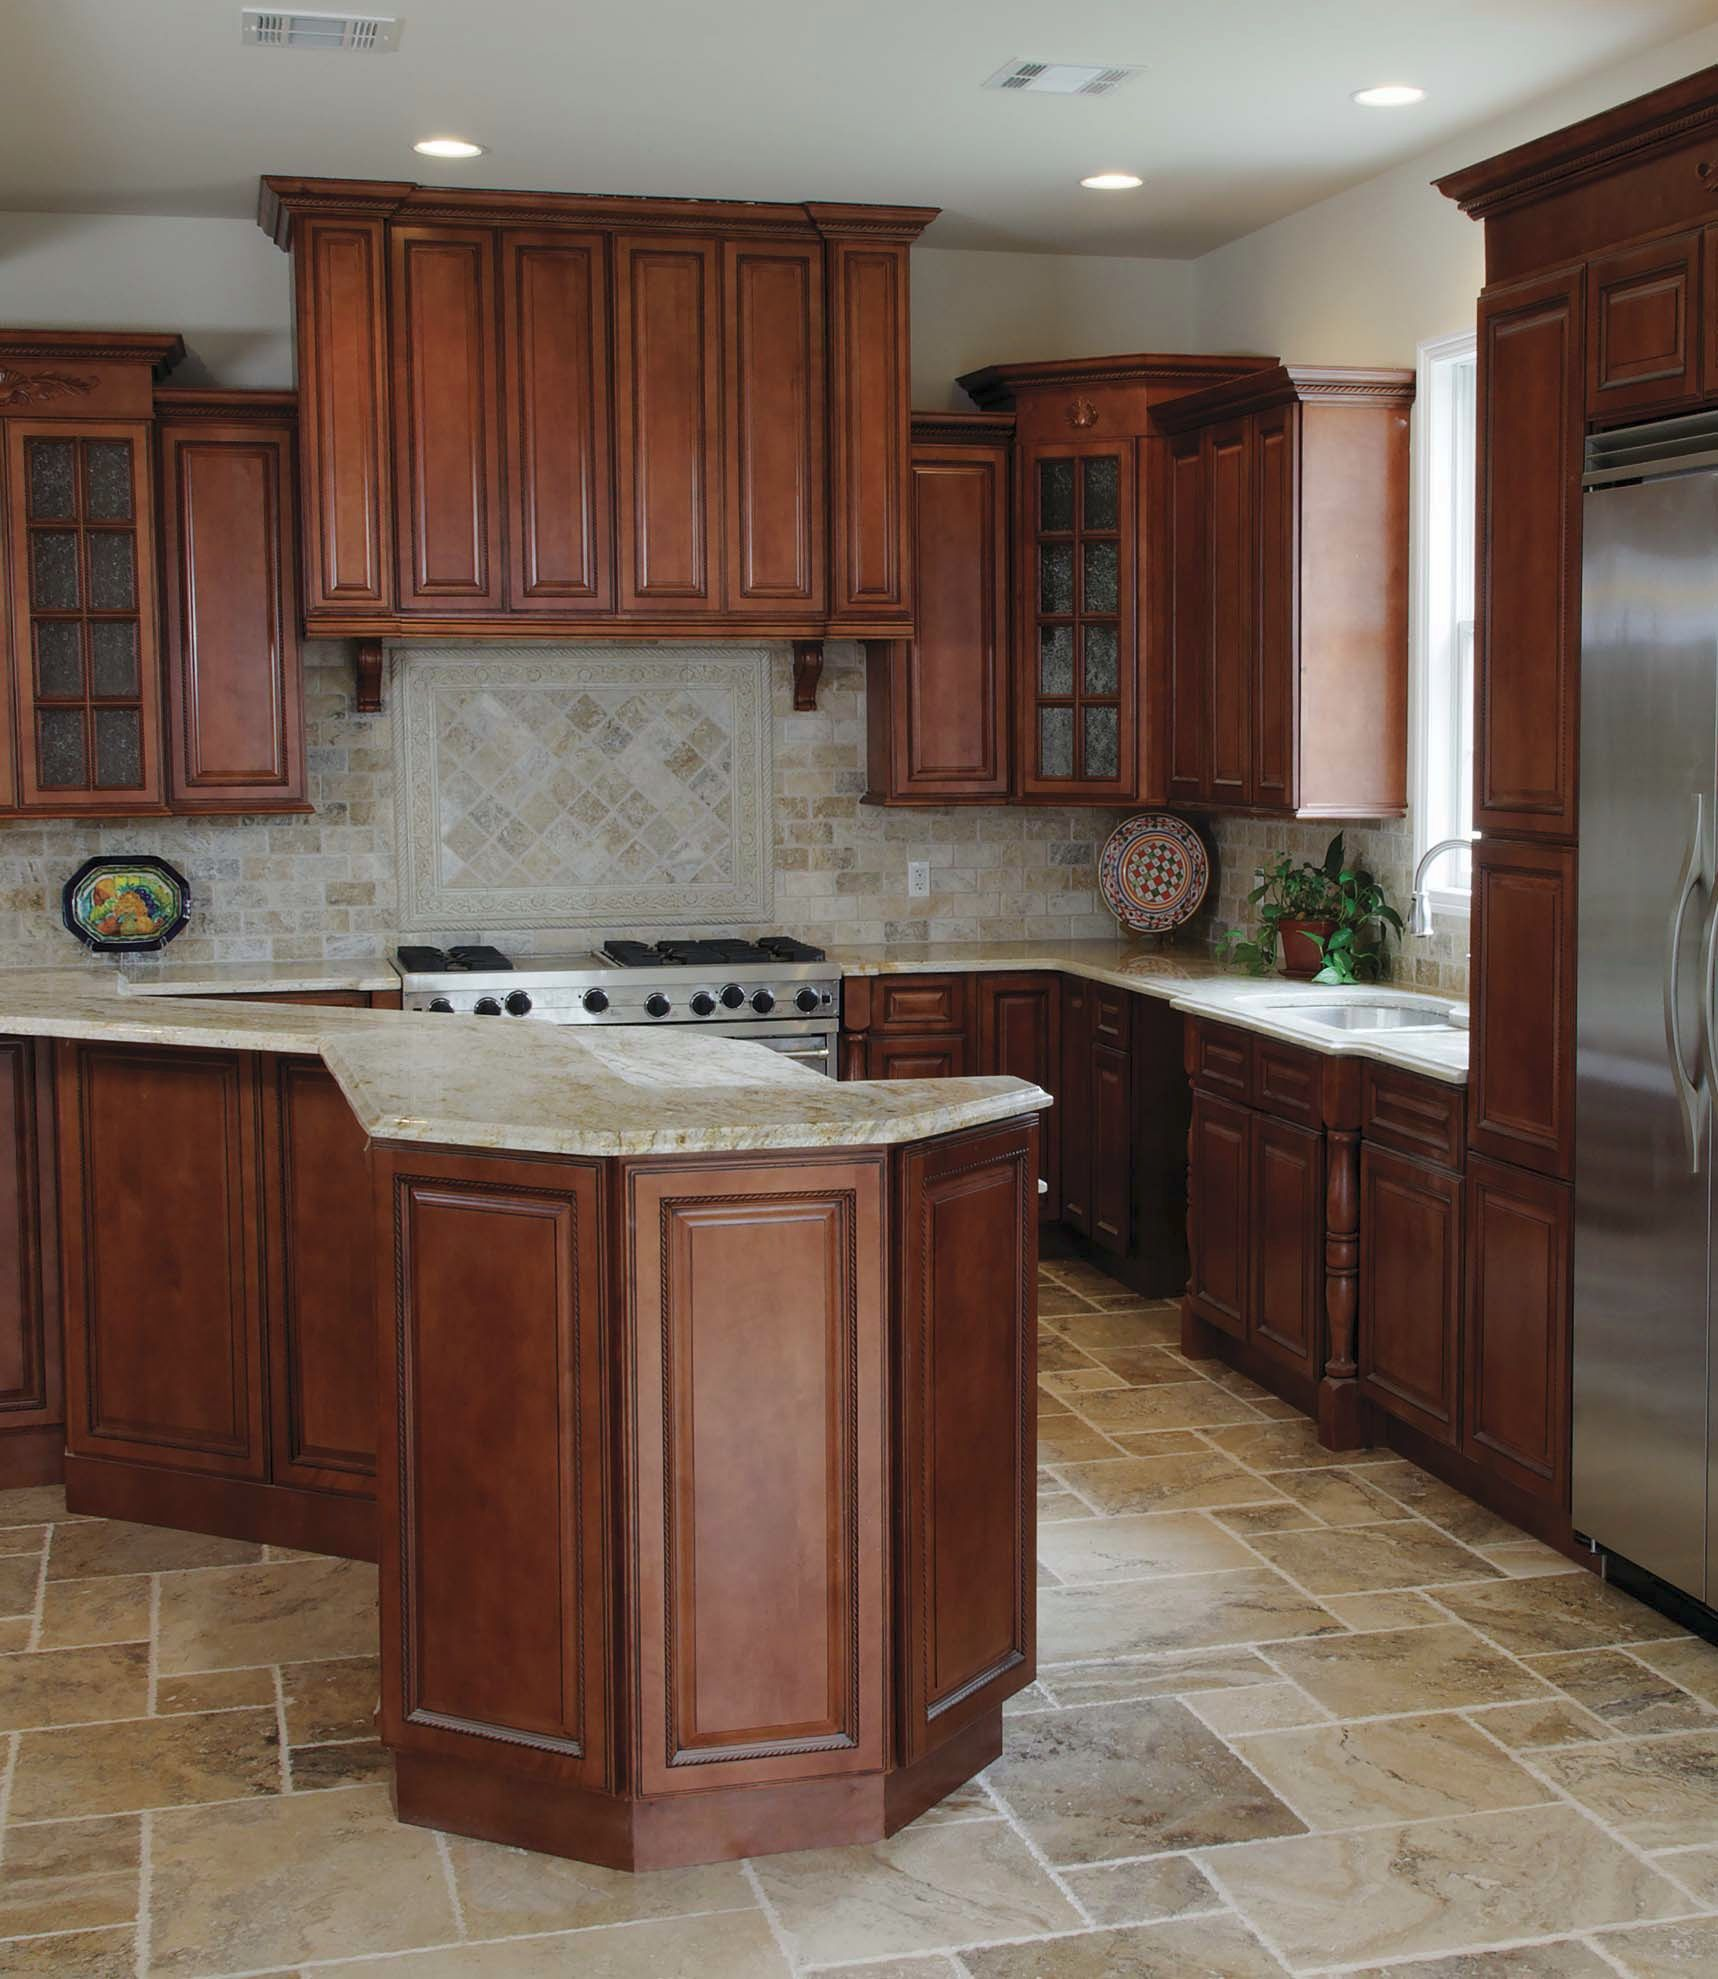 Rta Kitchen Cabinets Online: Nutmeg Twist #Kitchen Cabinets